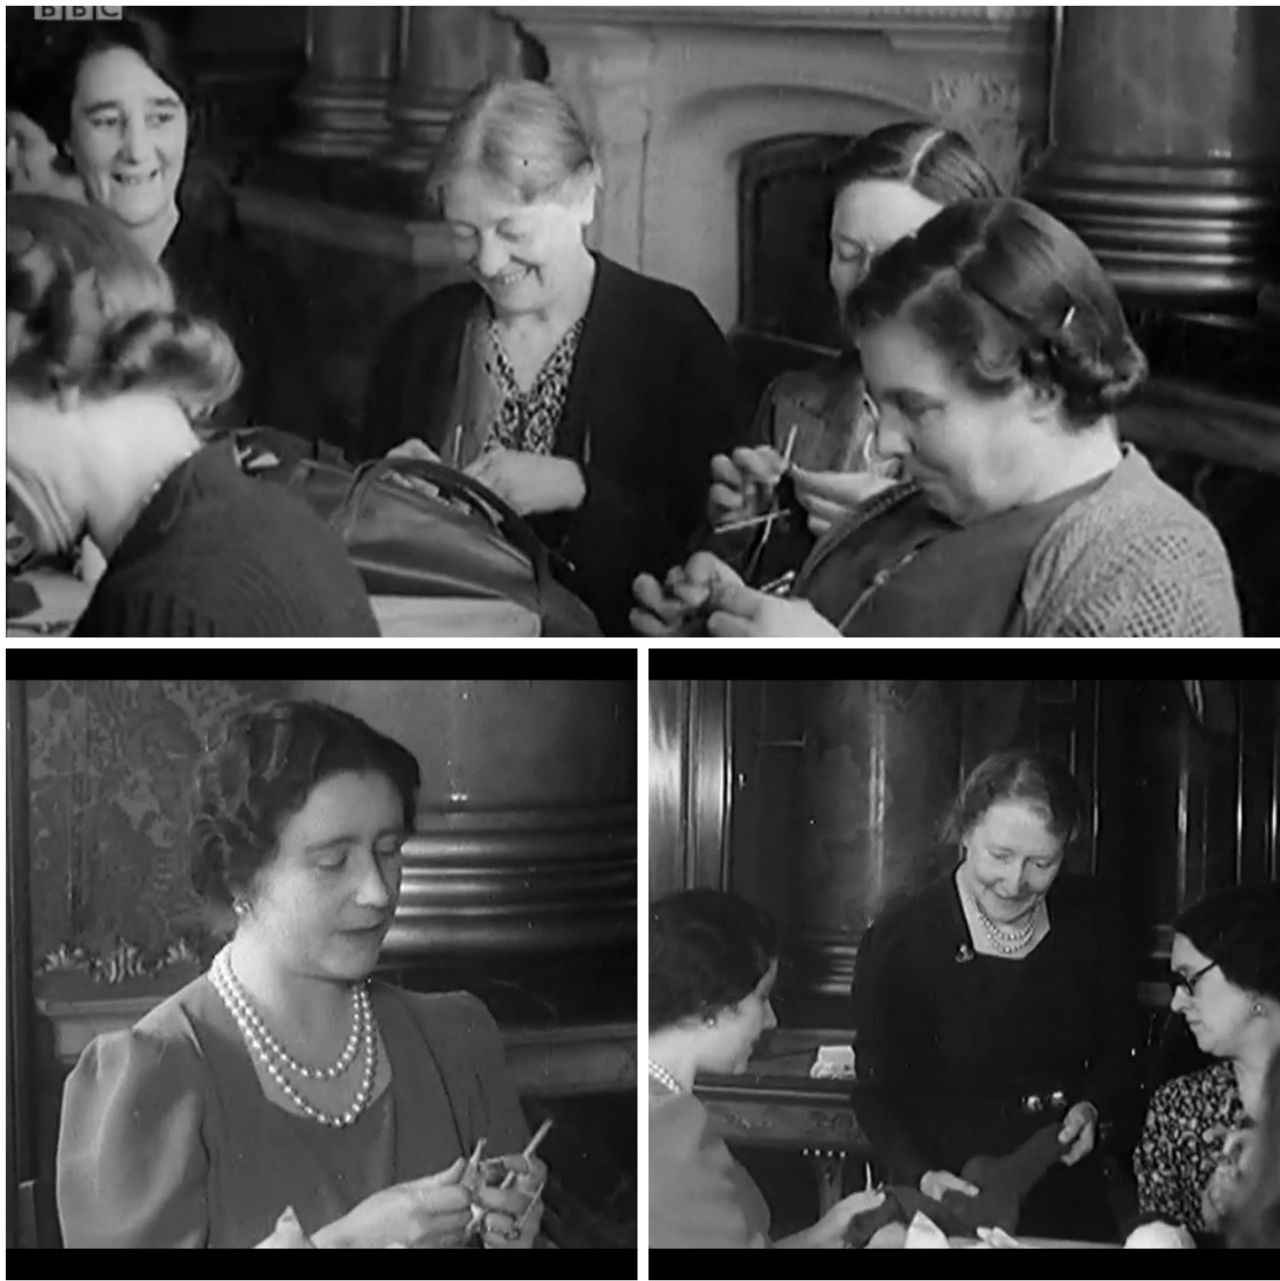 During WW2, Queen Elizabeth, (the mother of the current Queen, Elizabeth II) hosted weekly knitting sessions in the Blue Salon of Buckingham Palace. A hundred ladies would gather to make comforts for the troops and the cold at home.  (Stills courtesy of BBC's The Fabric of Britain)